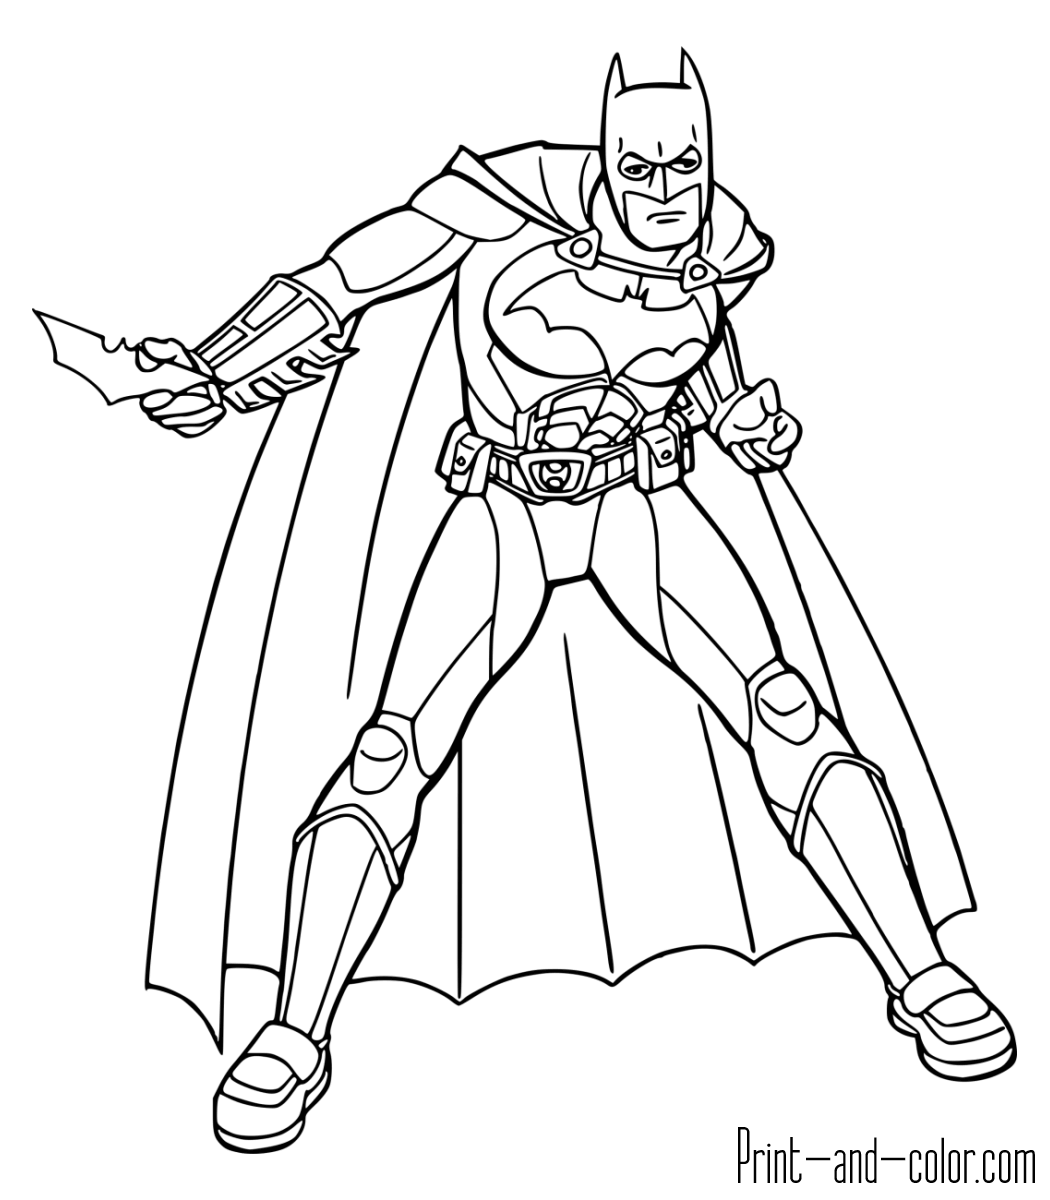 Batman Coloring Pages Batmanloring Pages Print Andlor